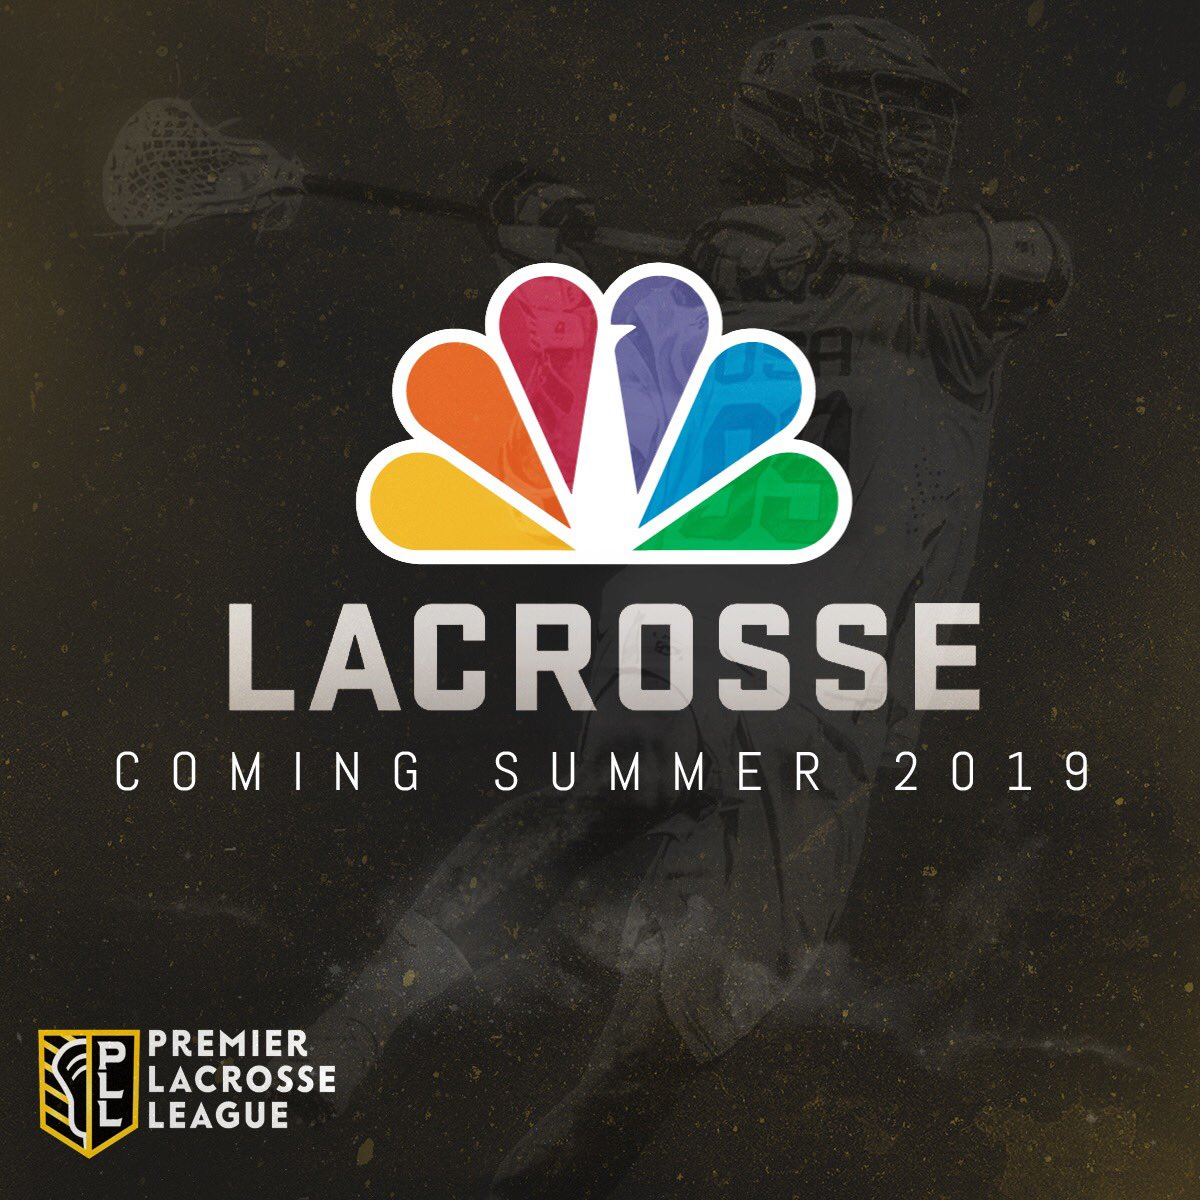 Lacrosse is coming to NBC Sports in 2019!